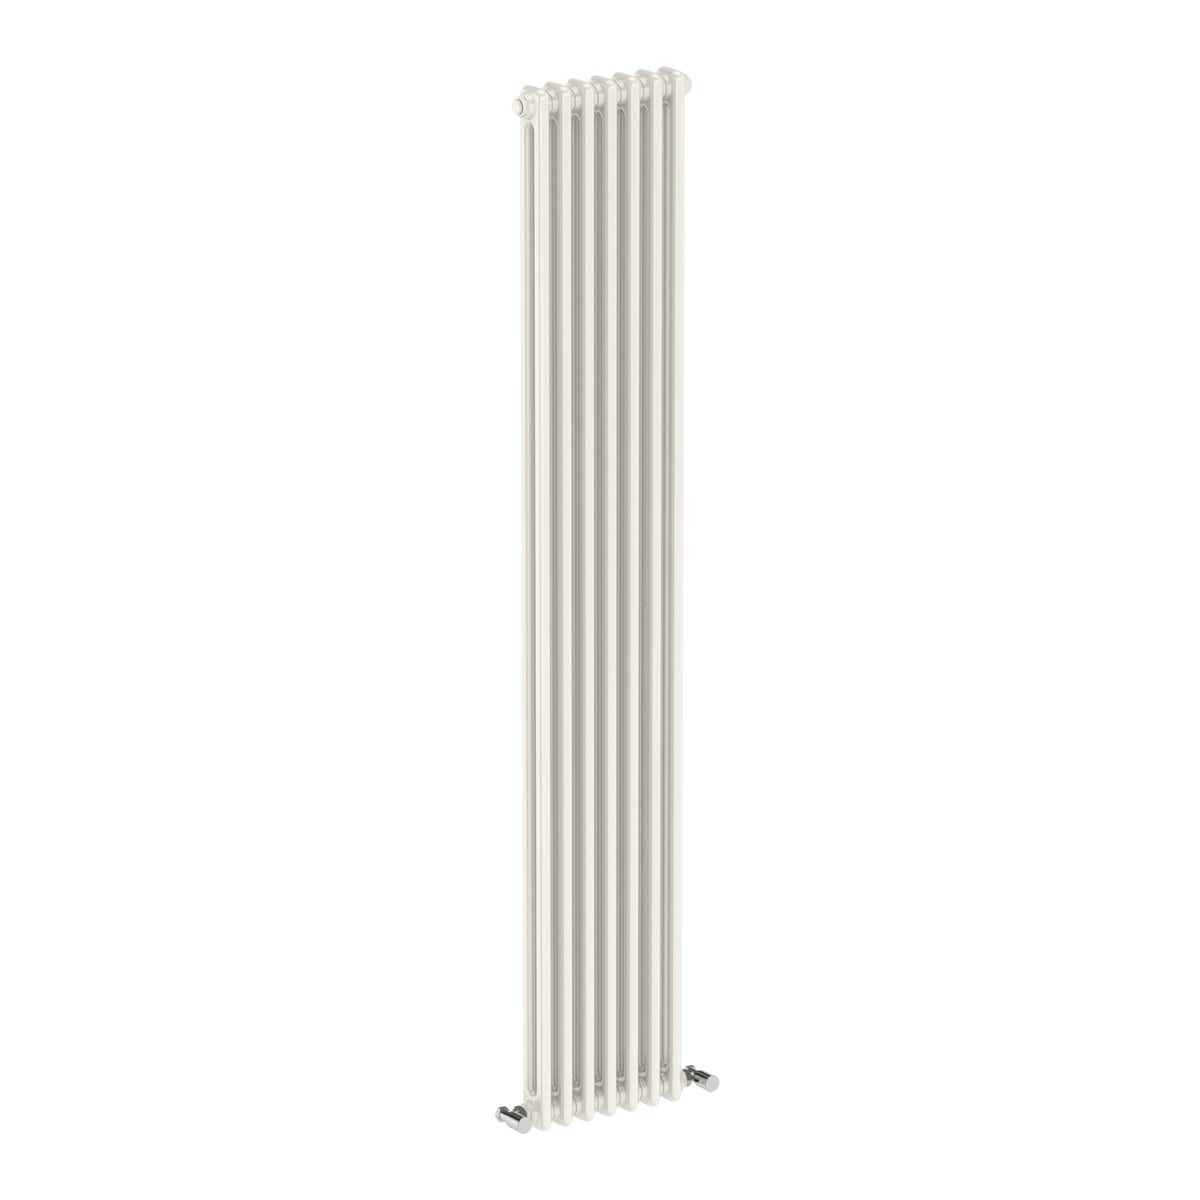 The Bath Co. Dulwich vertical white double column radiator 1800 x 335